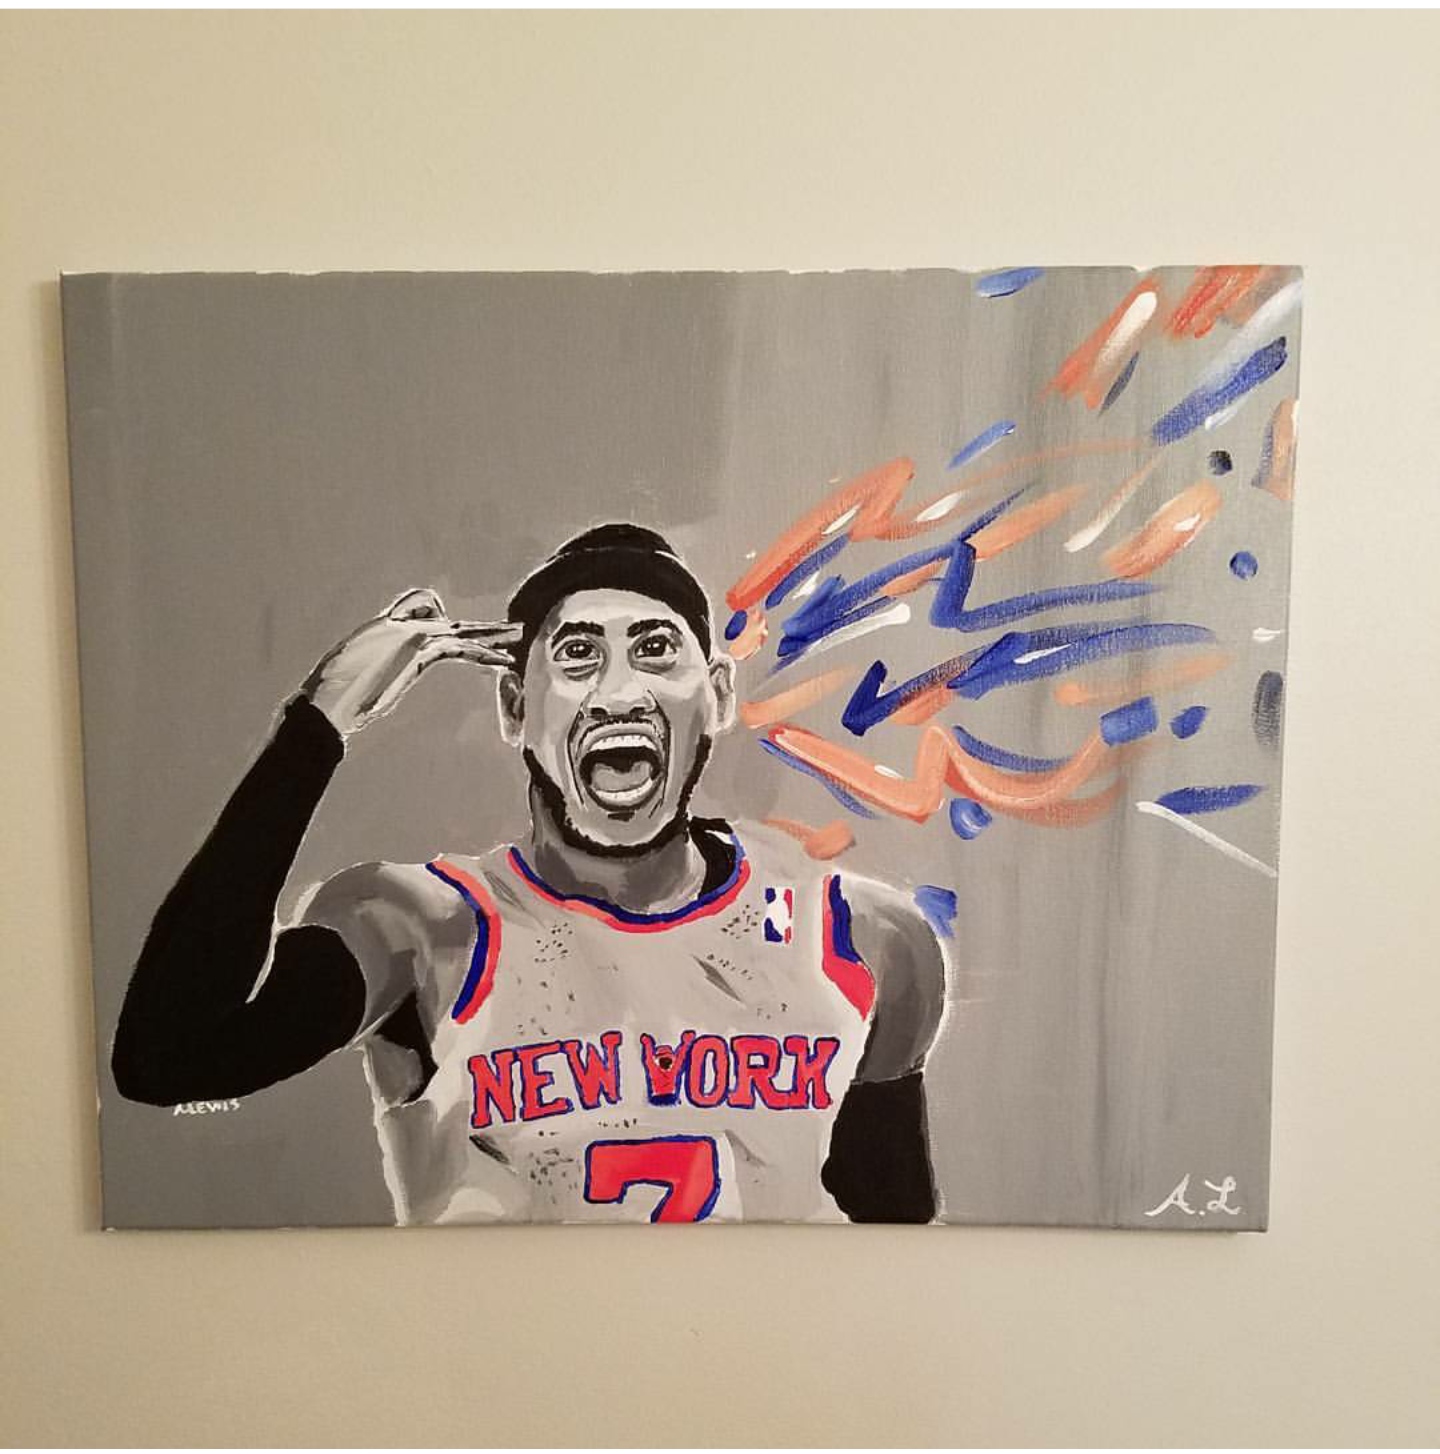 StayMelo